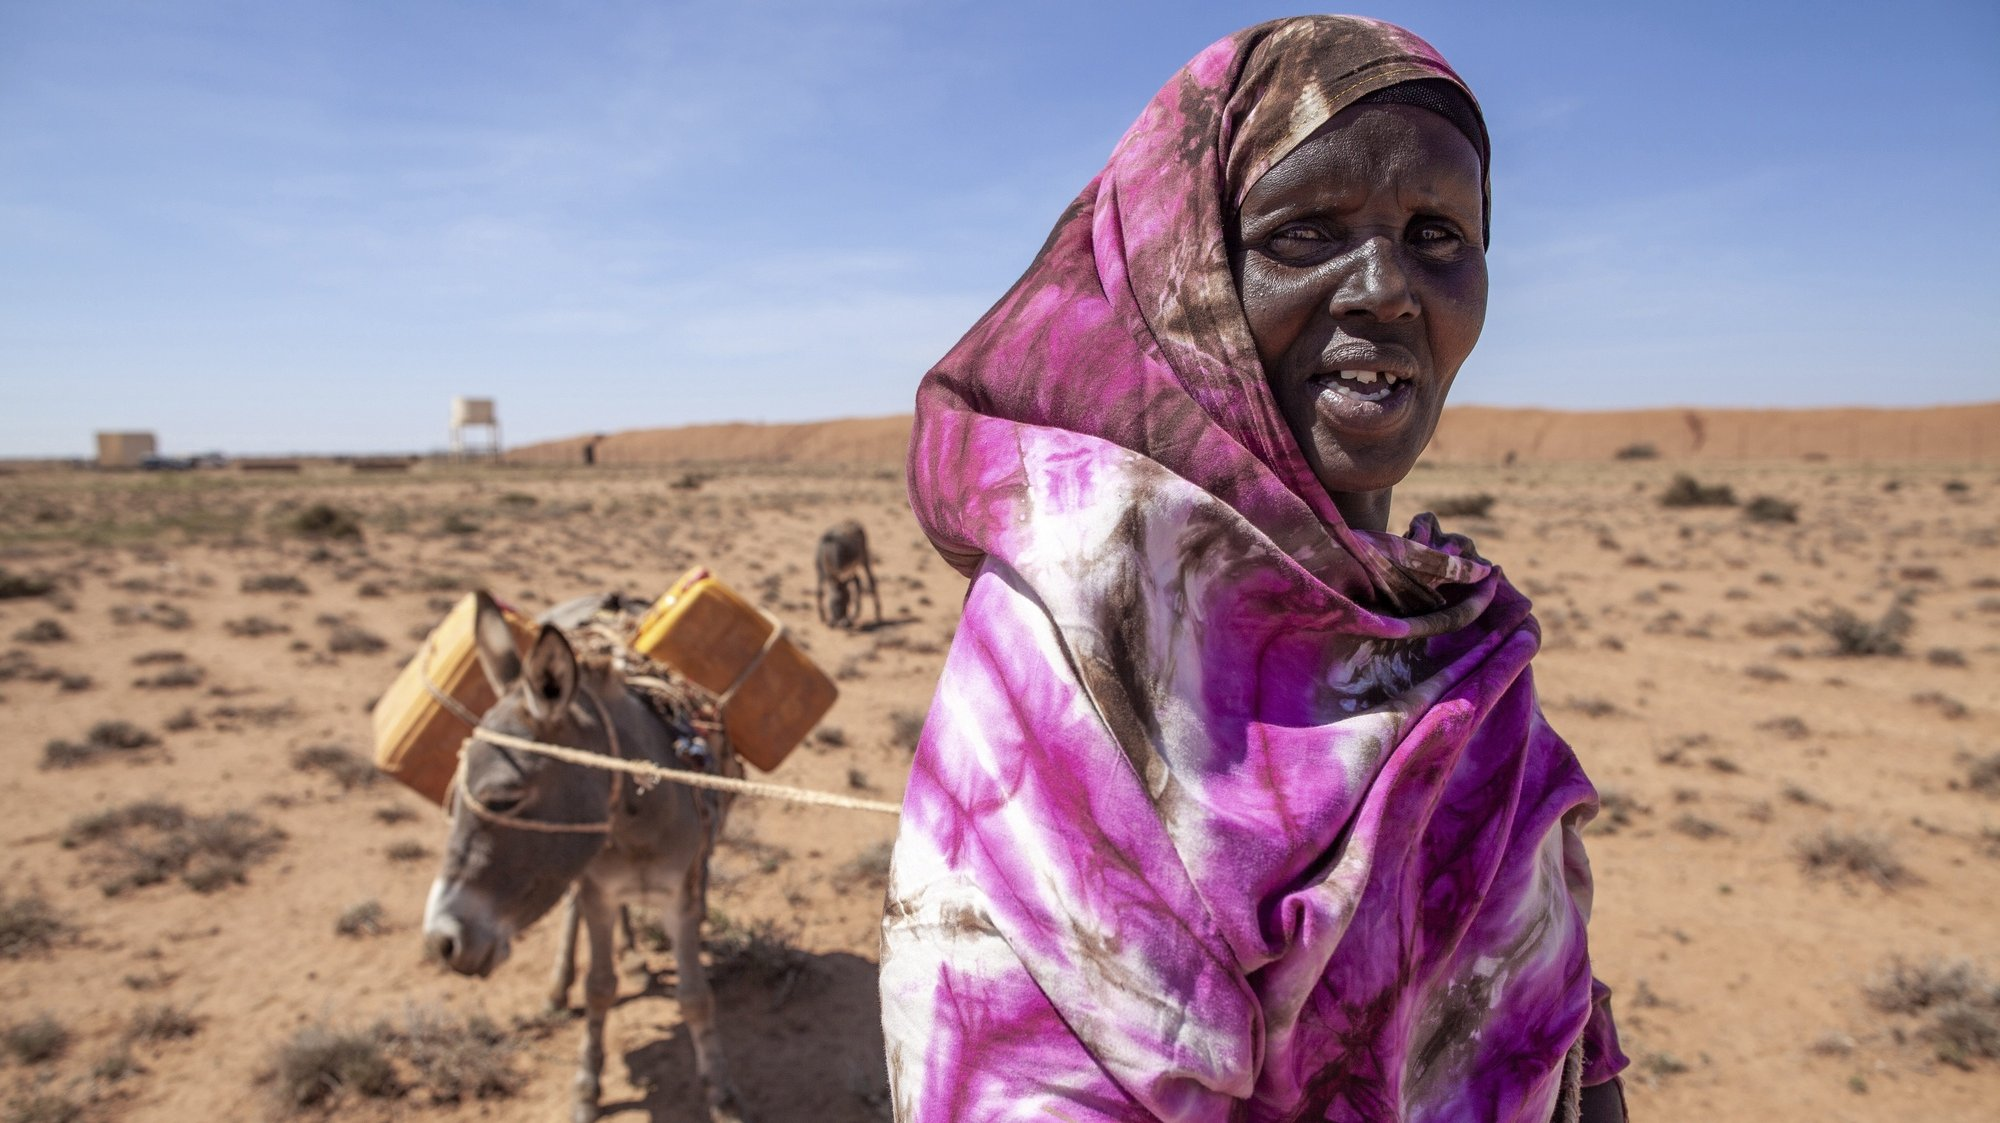 epa08219014 A handout photo made available by the United Nations Development Programme (UNDP) shows Fardosa Mohamed, a fifty-year-old pastoralist, searching for water in Baligubadle, Somaliland, the autonomous region of Somalia, 03 December 2019 (issued 15 February 2020). Somali pastoralists are particularly vulnerable to climate-induced phenomenon like drought and flooding.  EPA/MARK NAFTALIN / UNITED NATIONS DEVELOPMENT PROGRAMME HANDOUT  HANDOUT EDITORIAL USE ONLY/NO SALES